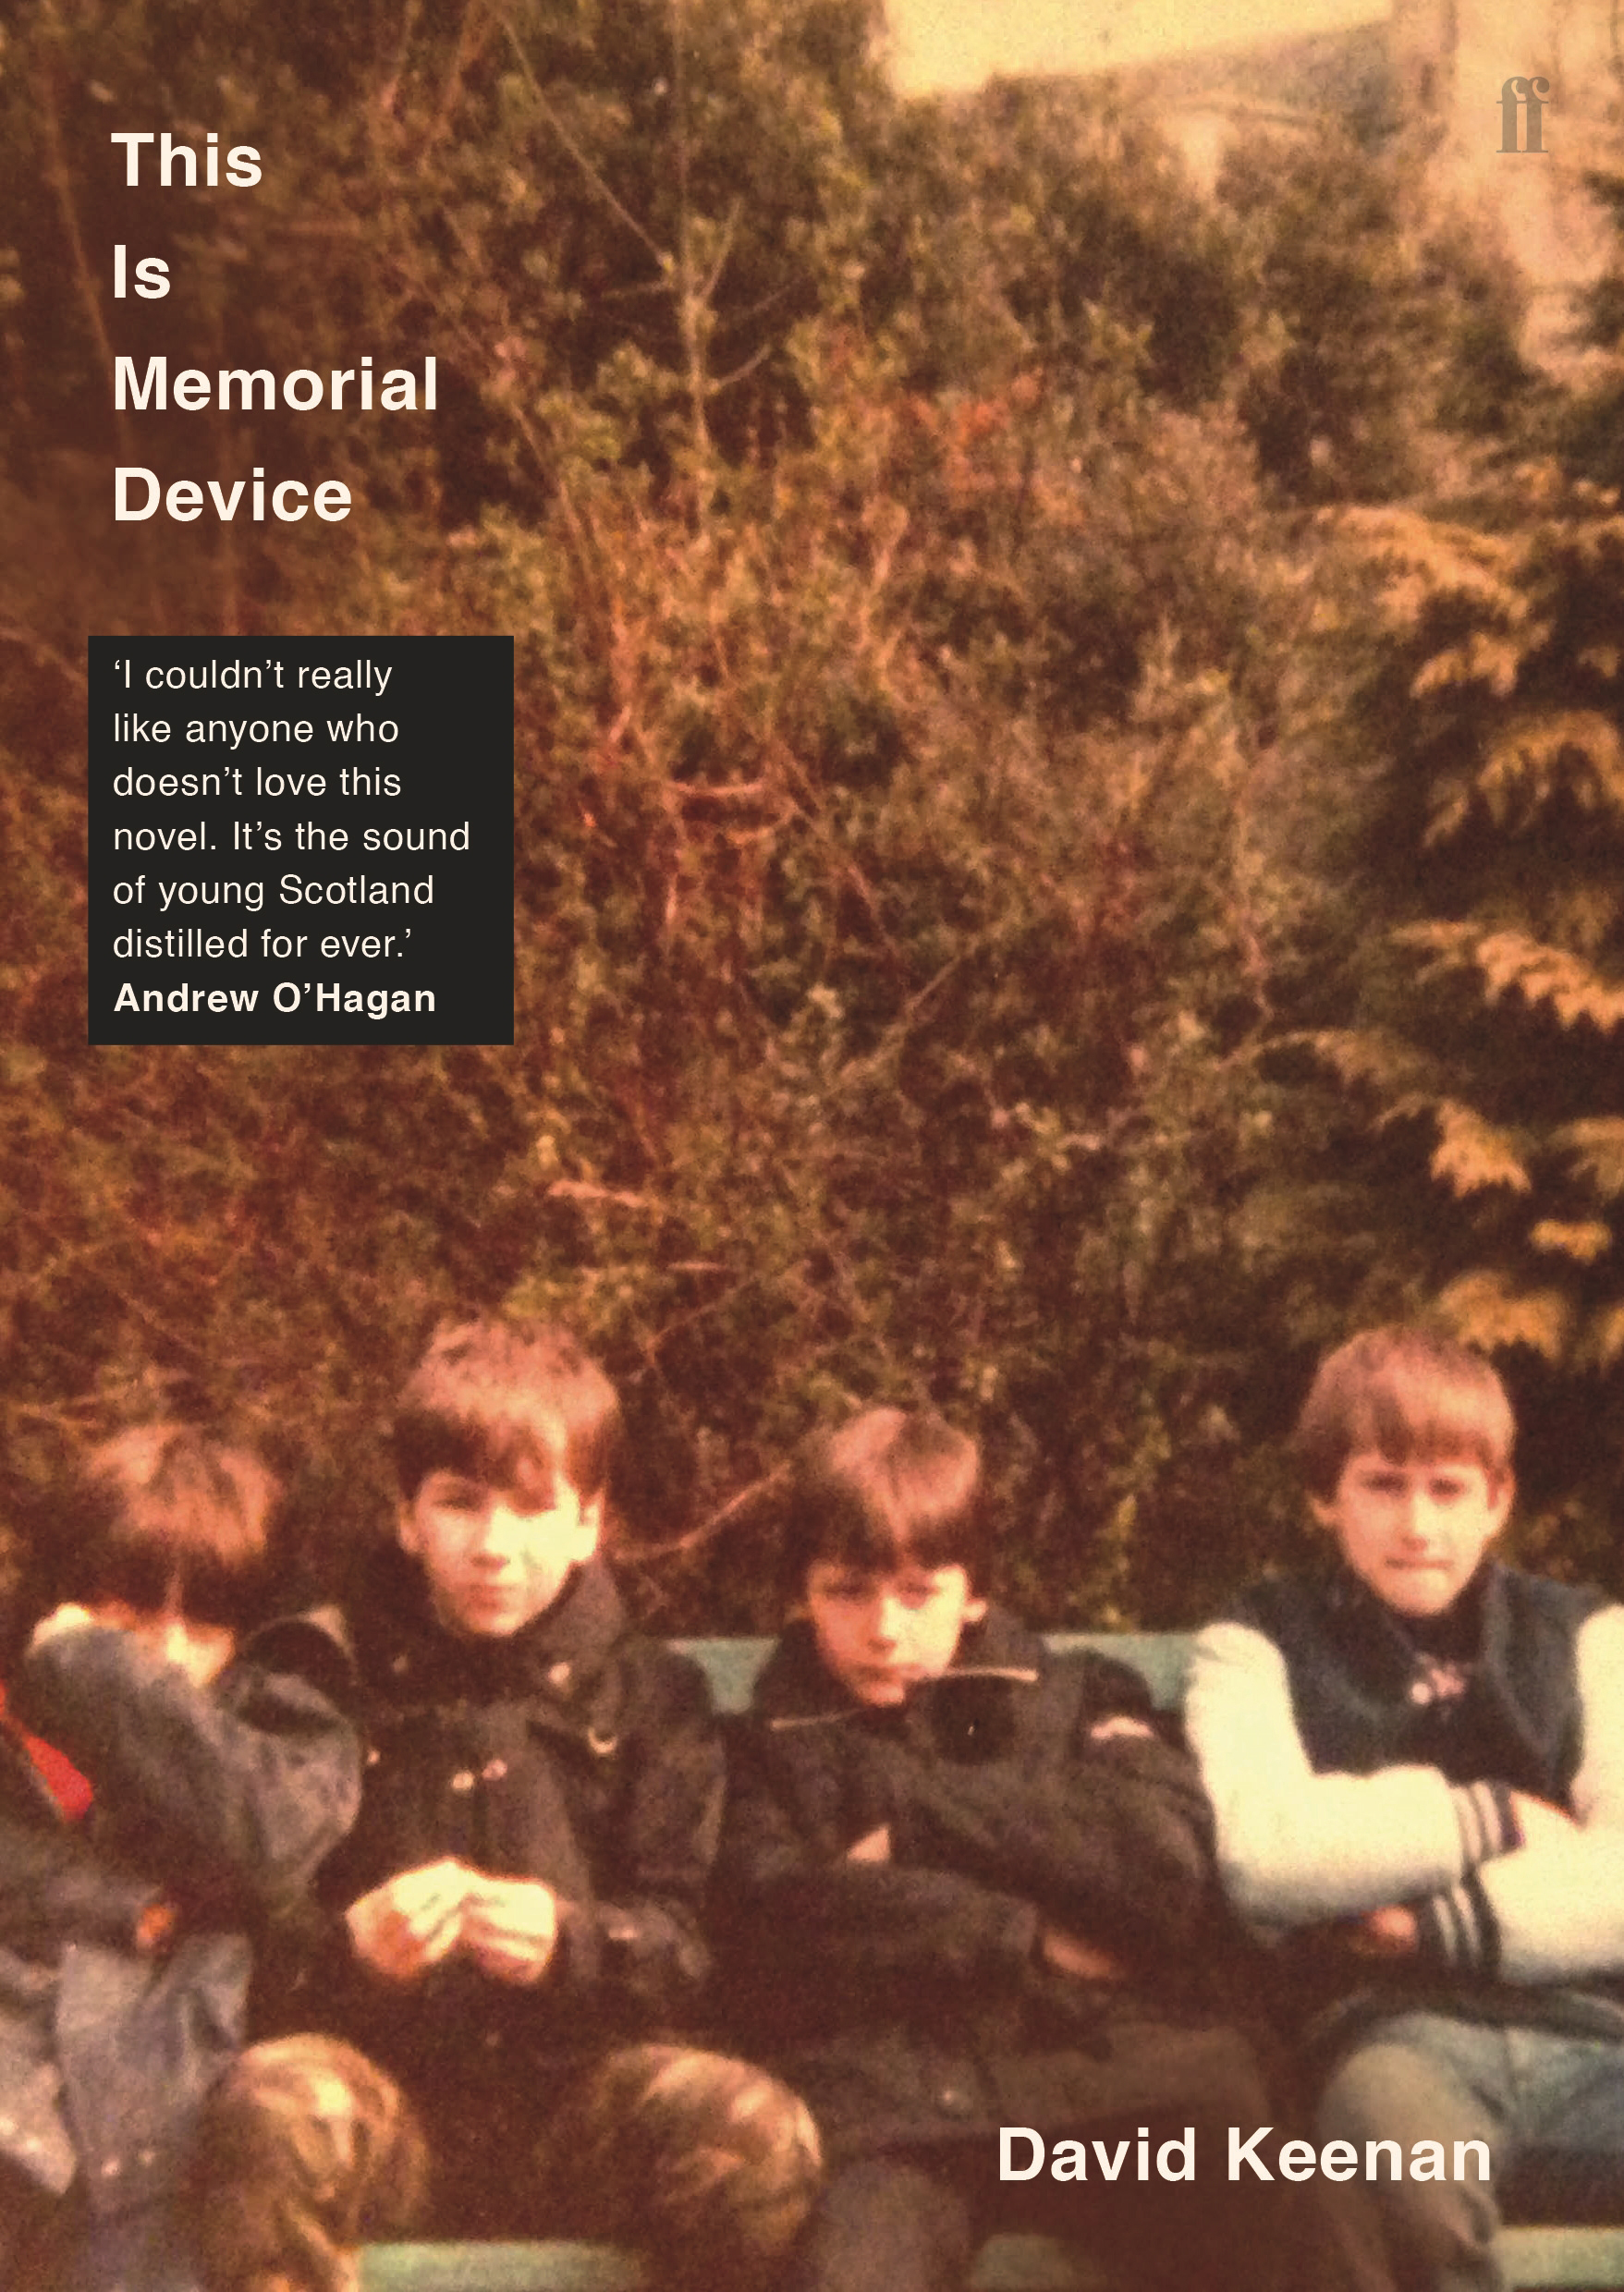 This Is Memorial Device: An Hallucinated Oral History of the Post-Punk Music Scene in Airdrie, Coatbridge and environs 1978-1986